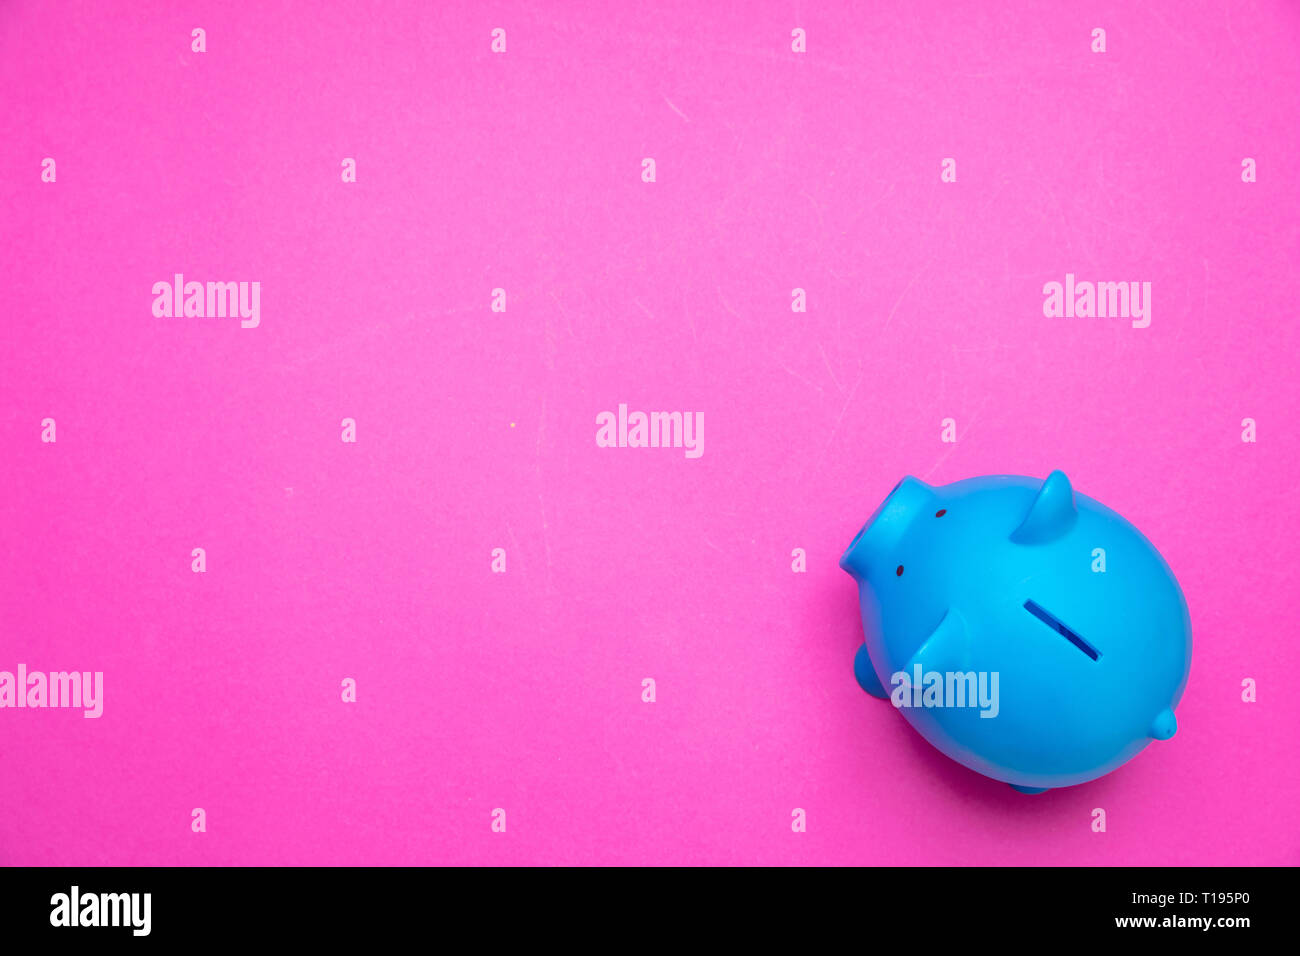 Savings concept. Piggy bank blue color against bright pink background, copy space, top view. Stock Photo